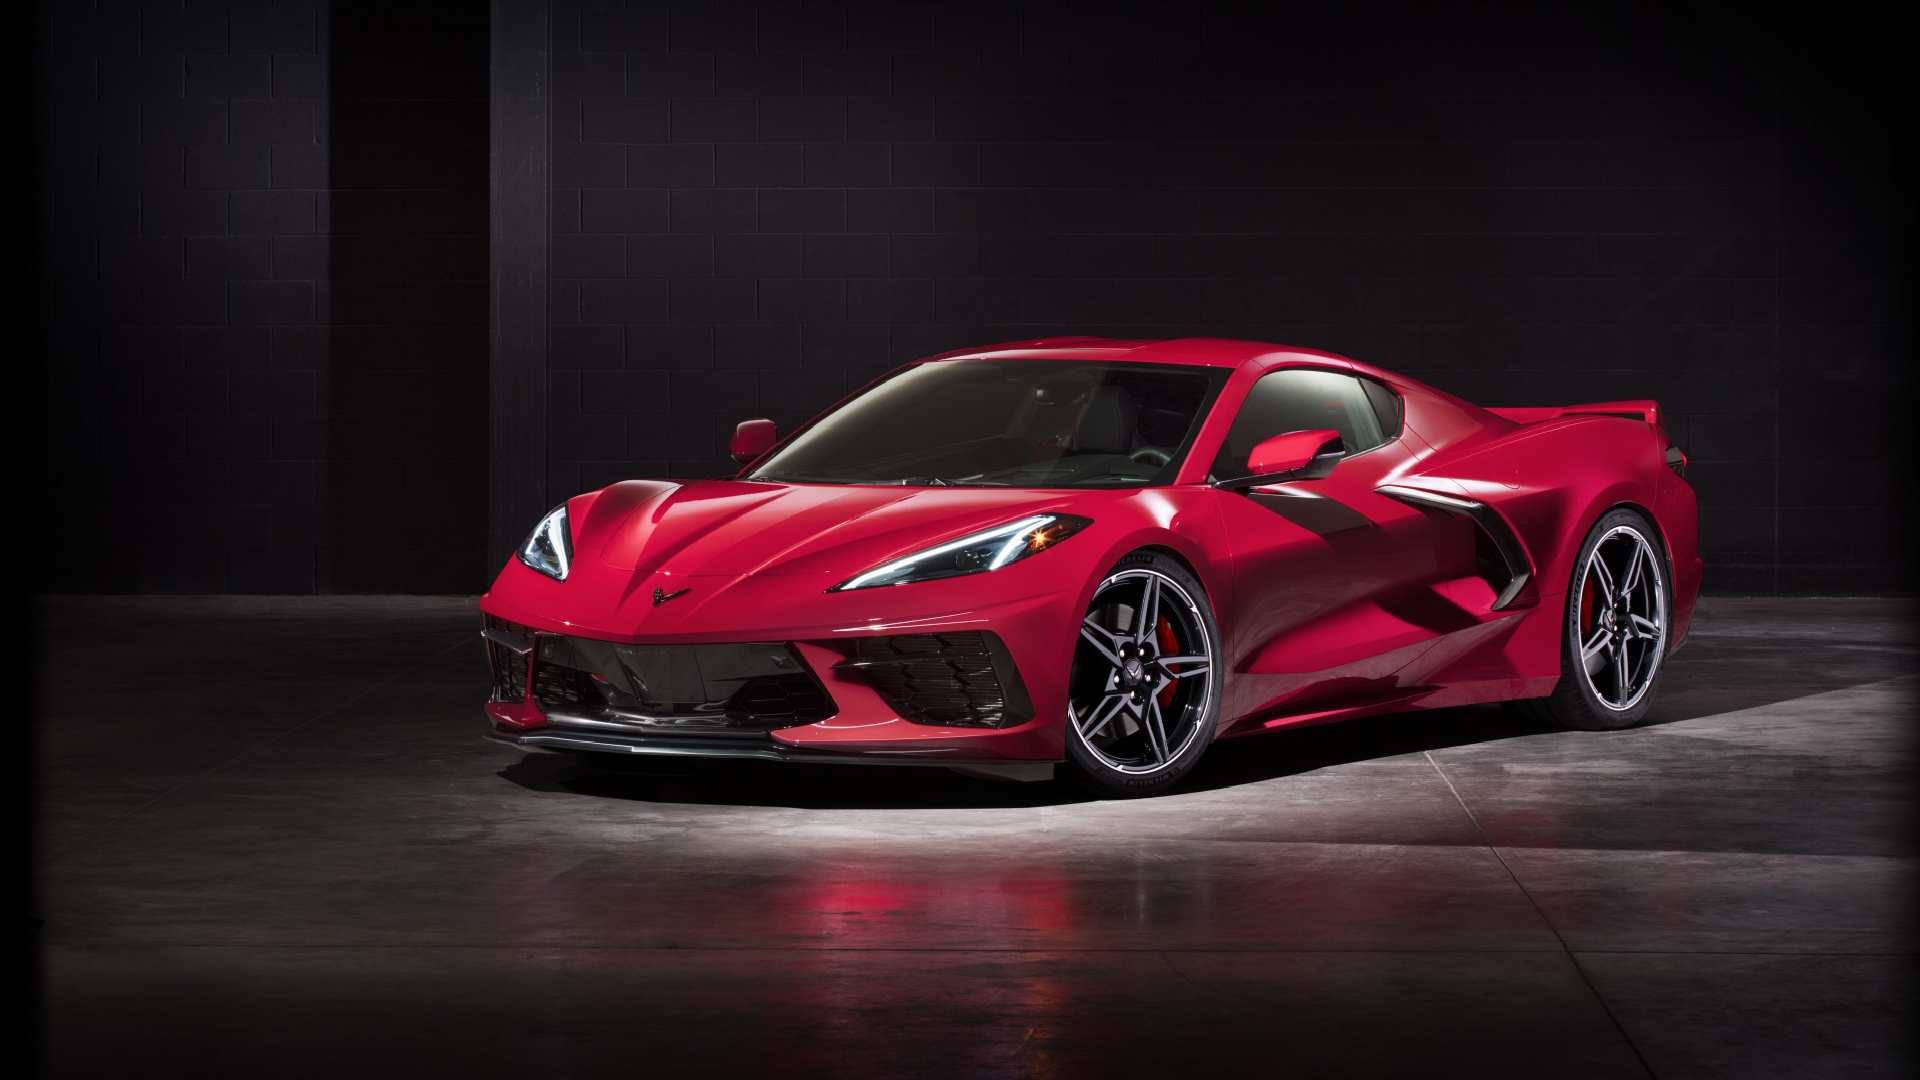 beautiful,sportscar,cherry,pinko,corvette,scarlet,design,motor,redness,elevator car,chevrolet,fast,luxury,vehicle,performance,gondola,red,nice,railway car,railcar,cars,automotive,stingray,ruby,z51,drive,supercar,2020,automobile,sports...